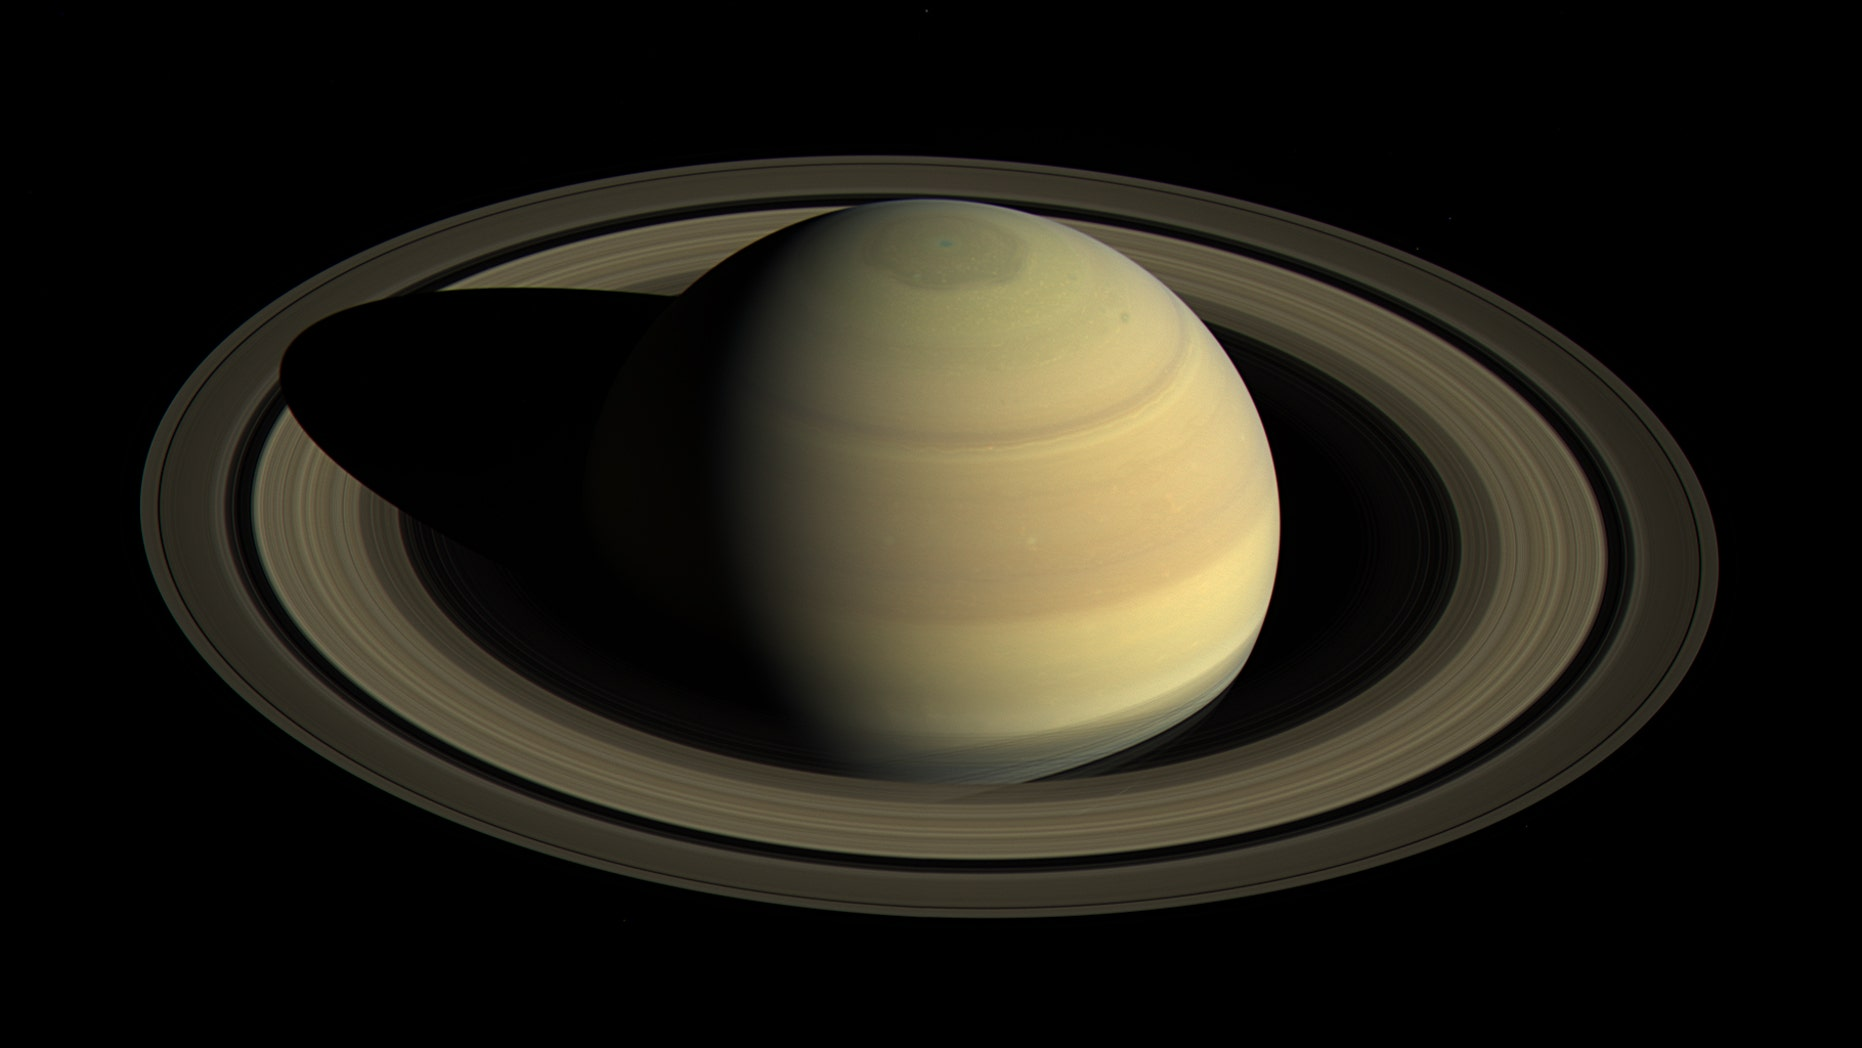 Saturn. (NASA/JPL-Caltech/Space Science Institute)